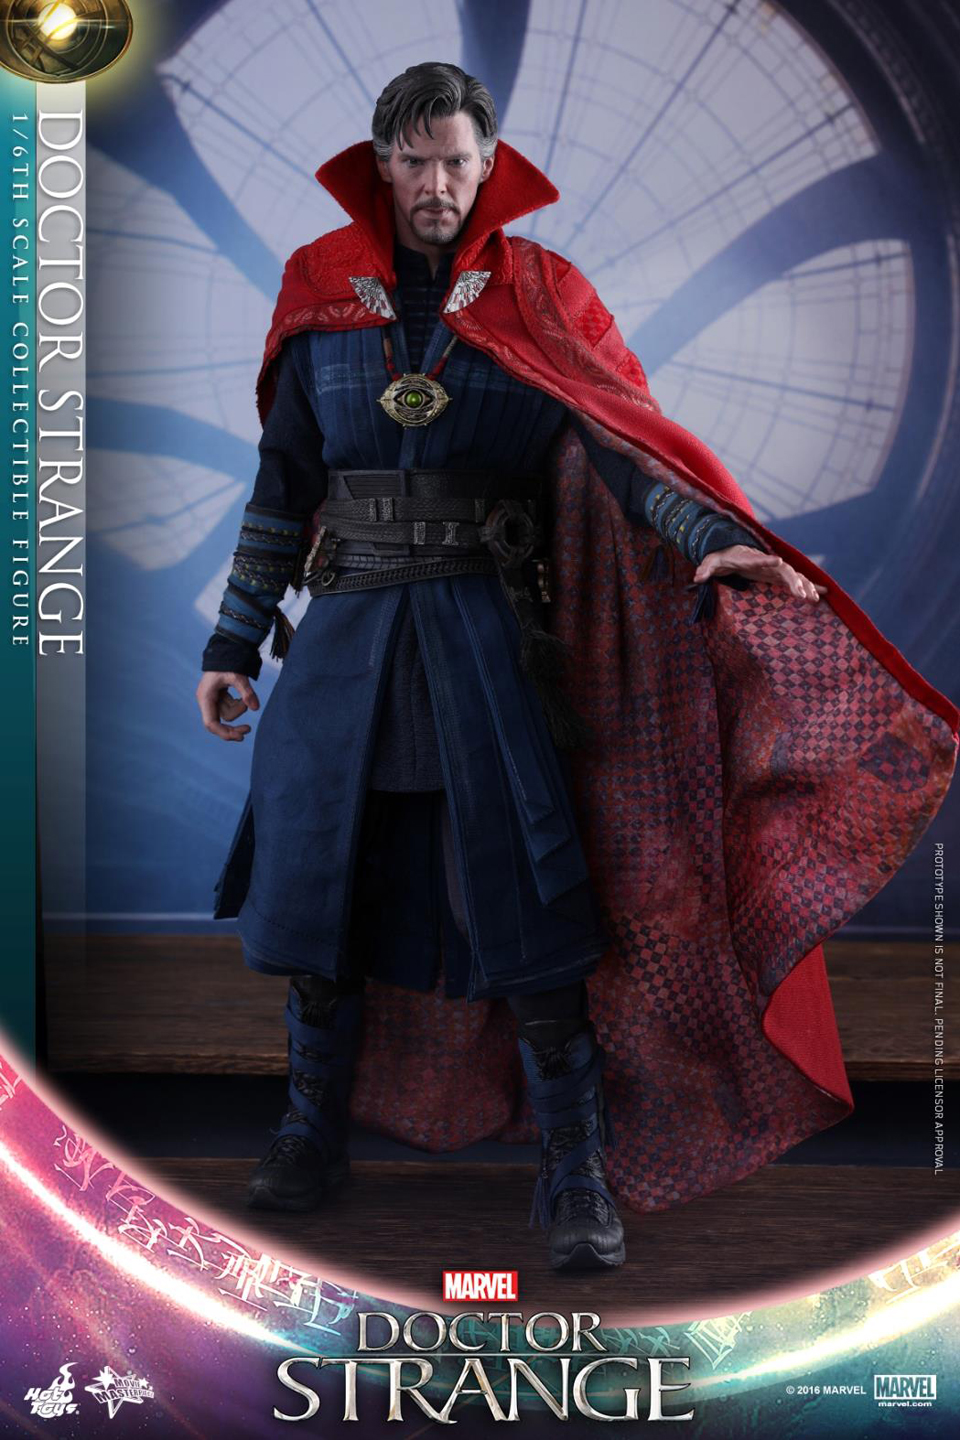 Hot Toys Doctor Strange 1/6 Scale Action Figure